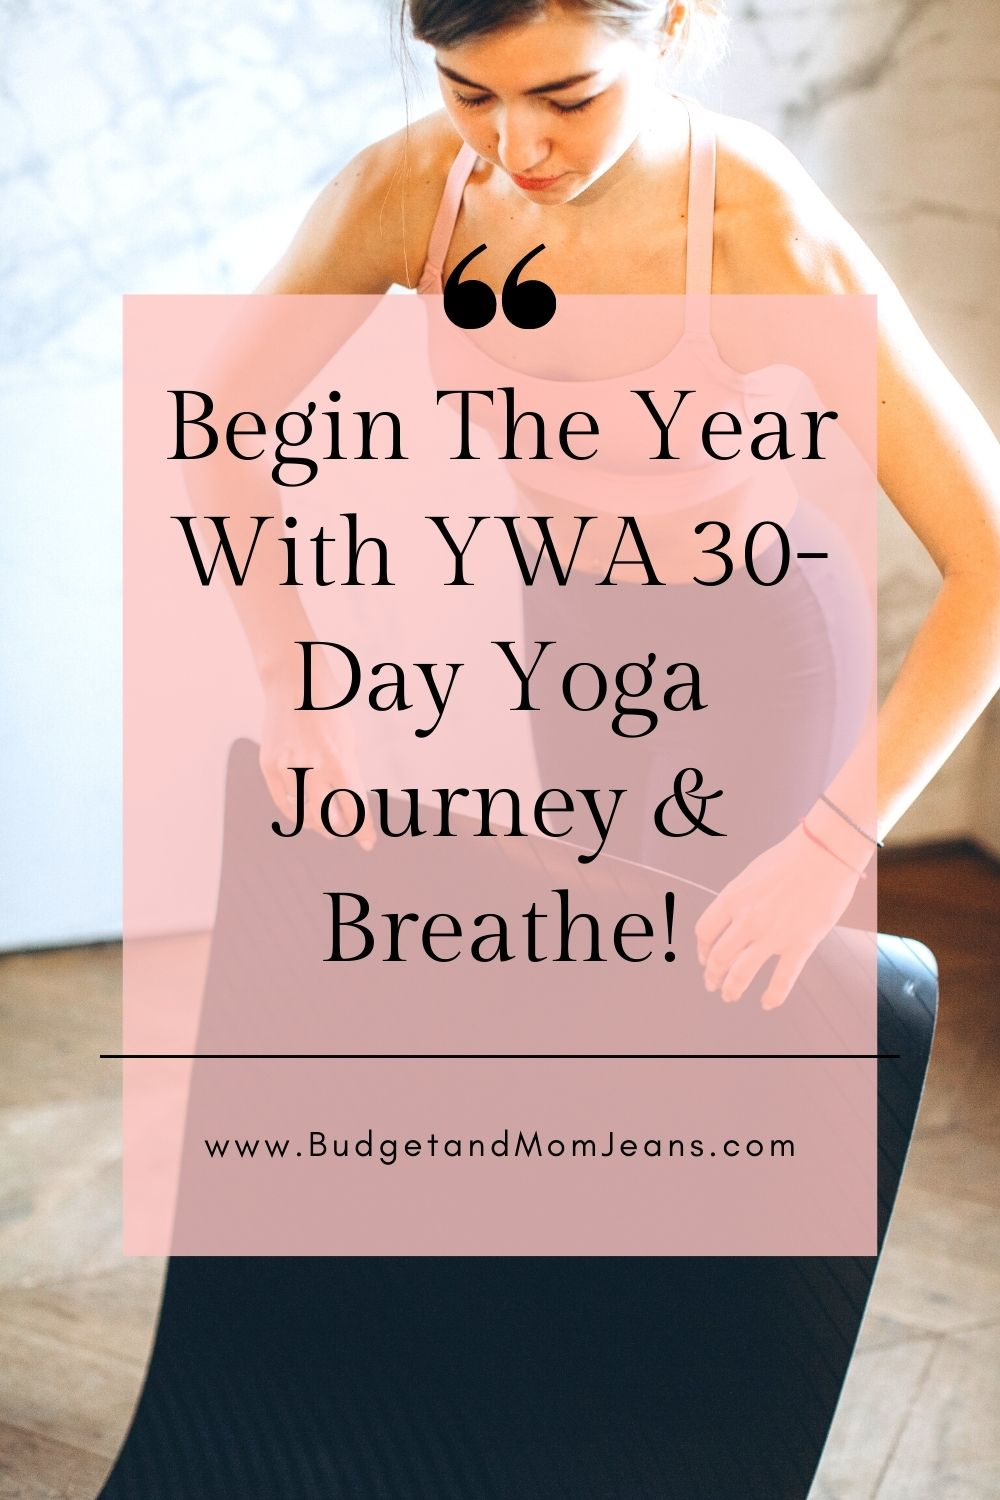 Begin The Year With YWA 30-Day Yoga Journey